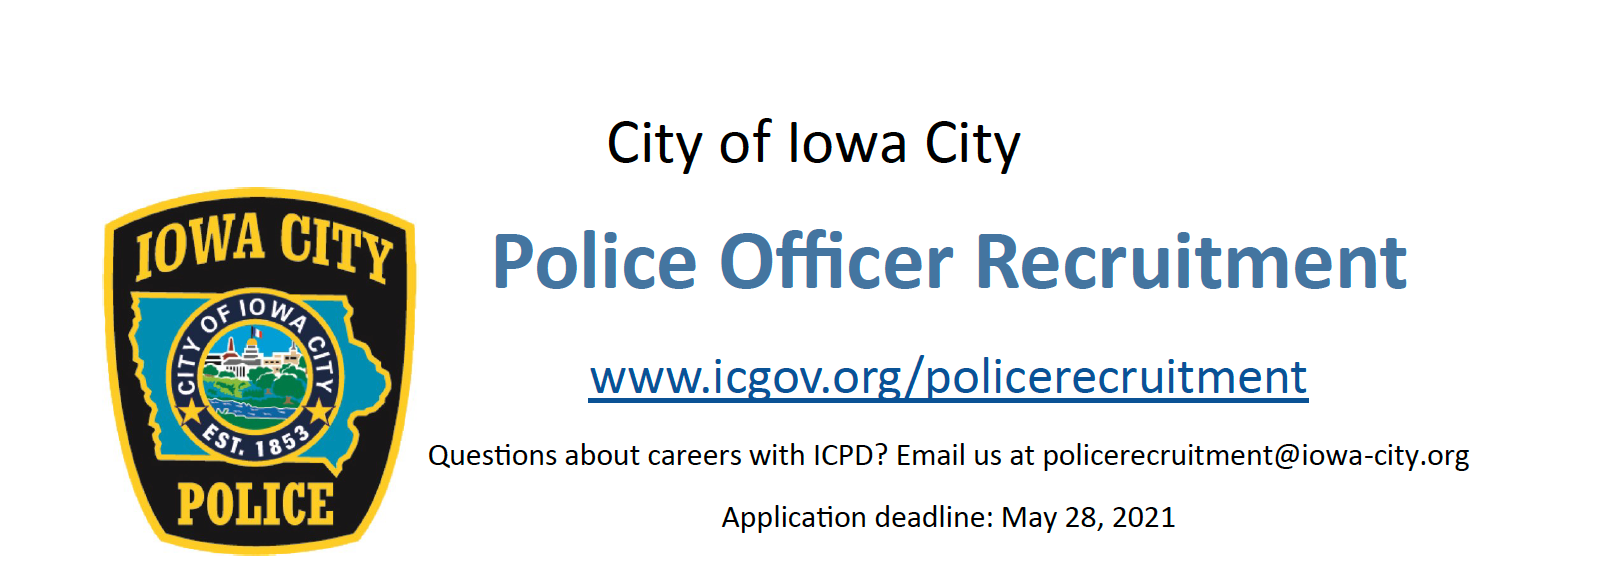 """An image an IPCD badge and the text """"Police Officer Recruitment"""" is shown."""